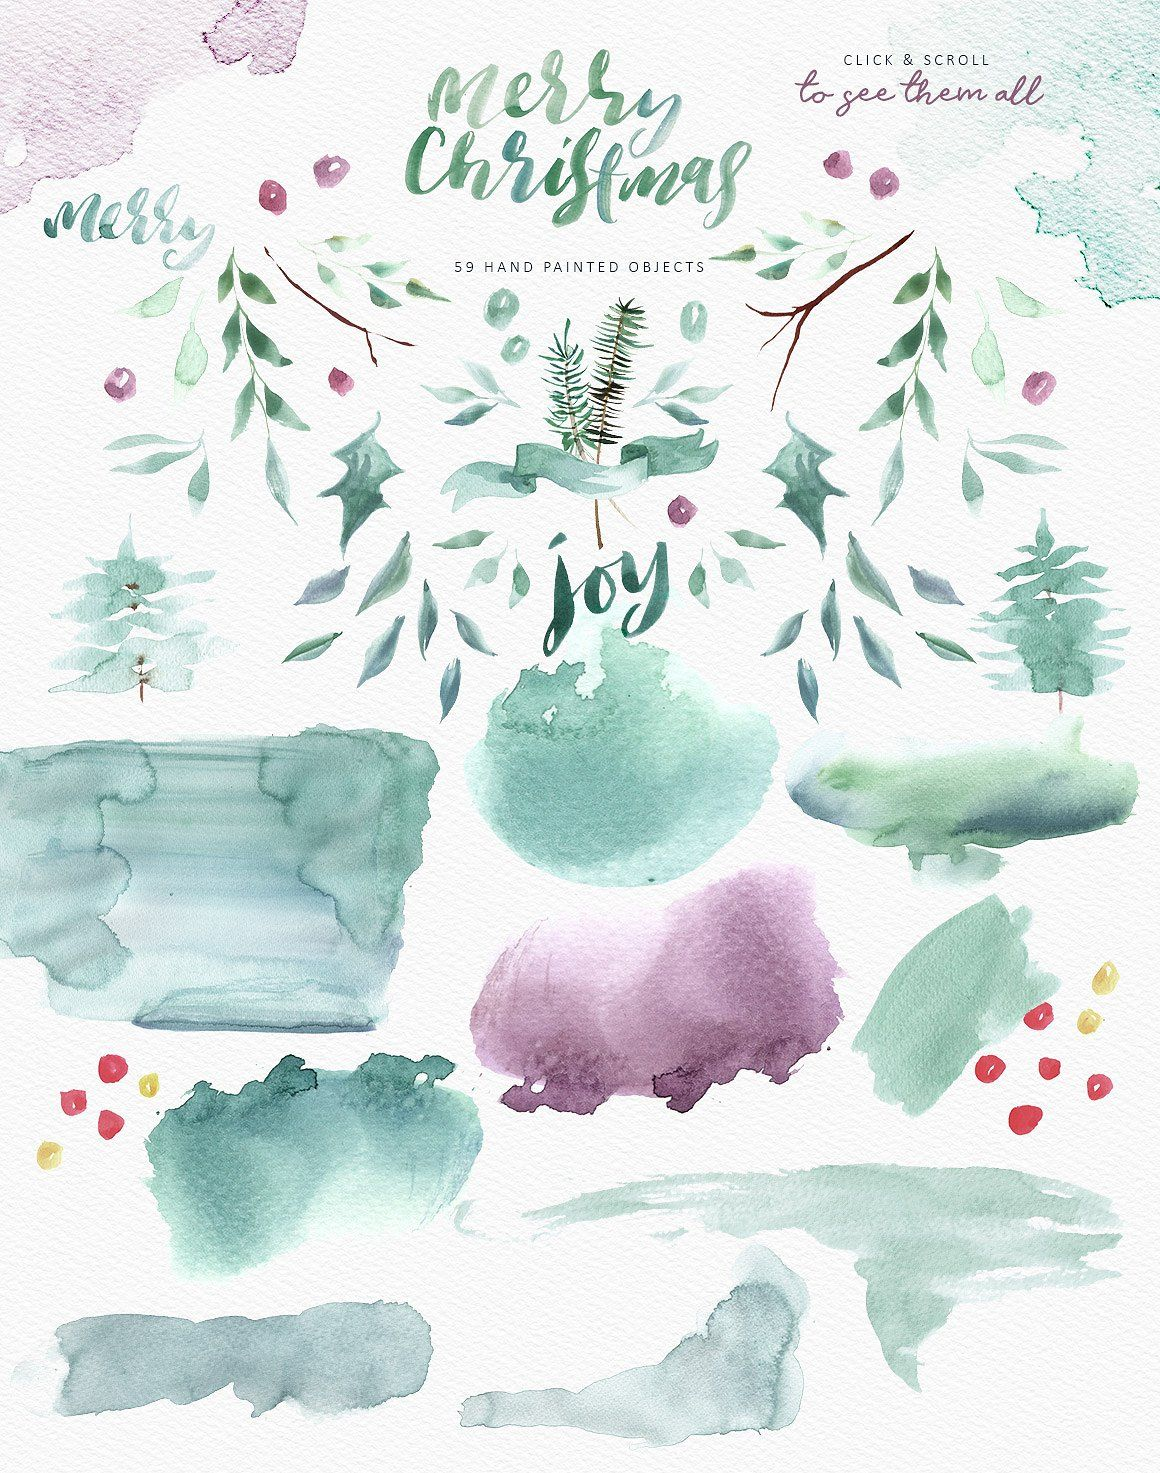 Merry Christmas Watercolor Bundle Christmas Watercolor Design